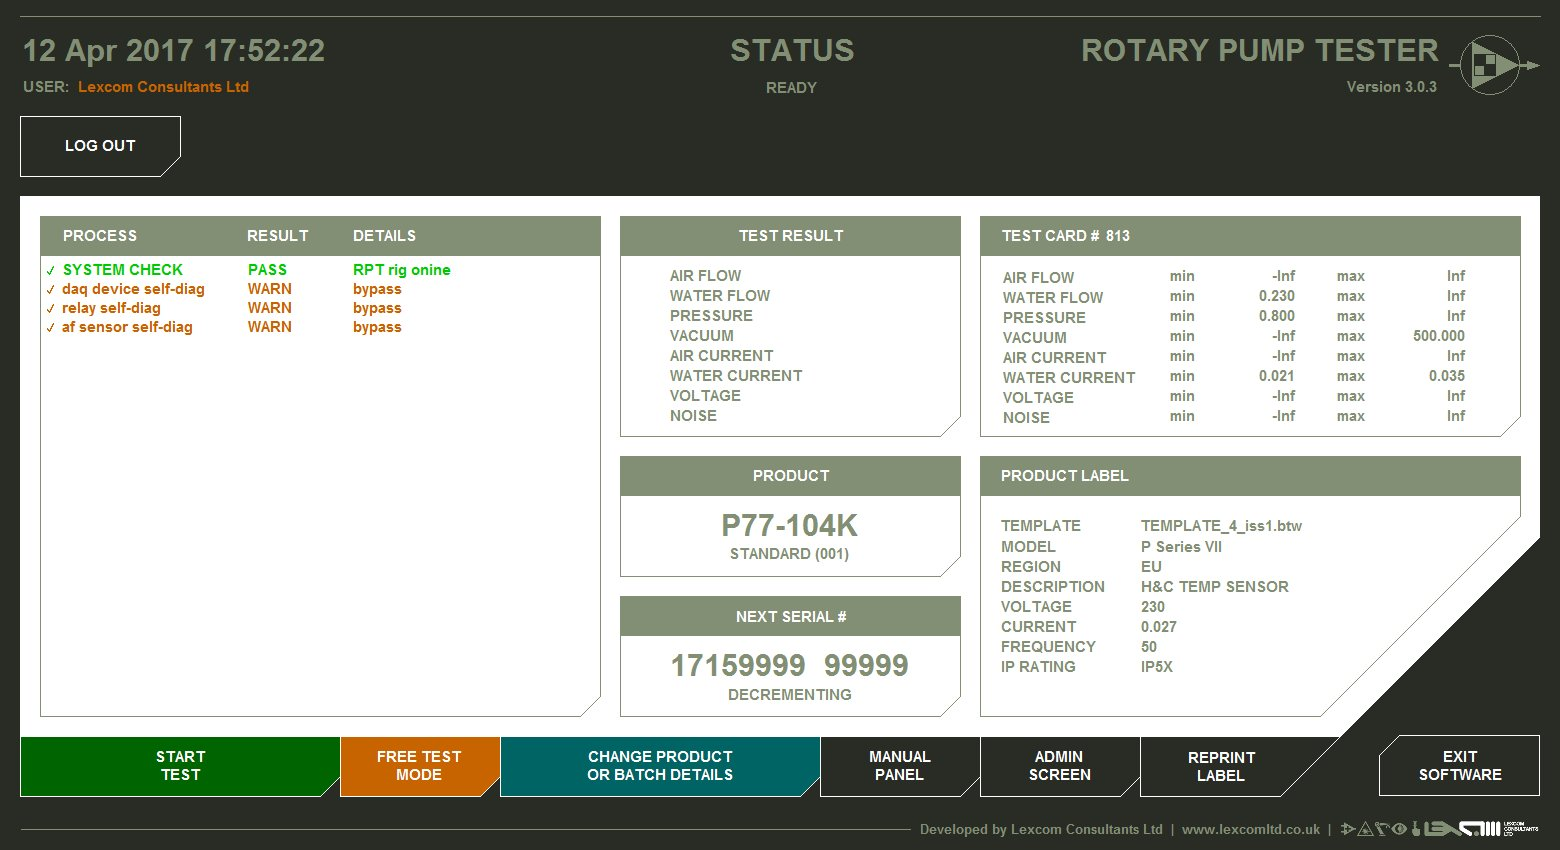 LabVIEW FP Rotary Pump Tester main GUI